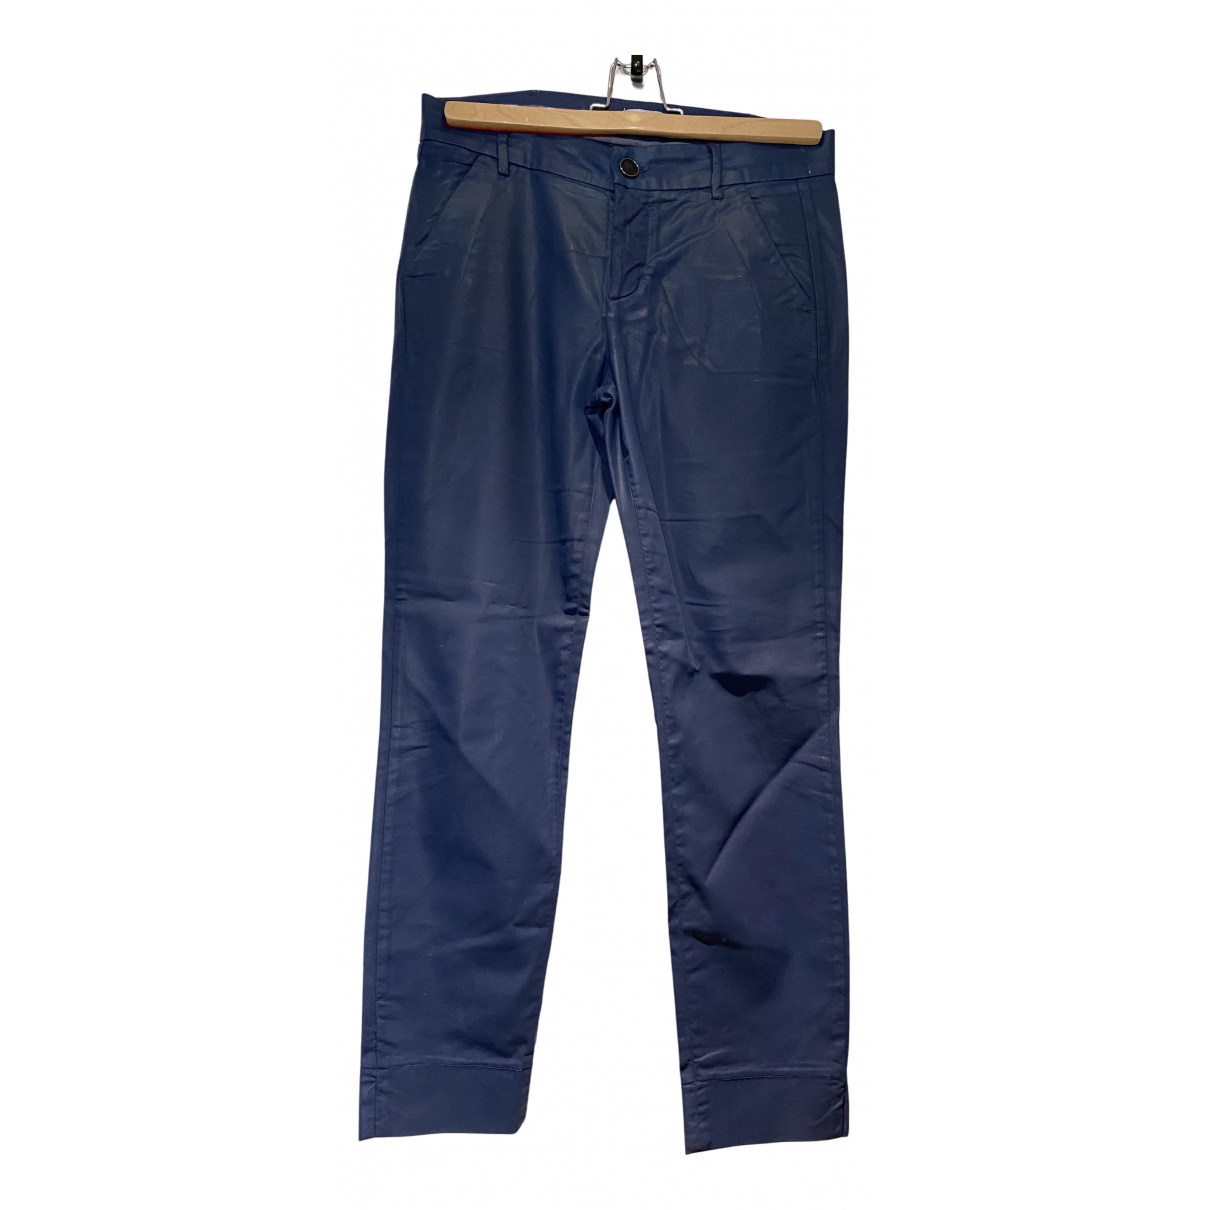 7 For All Mankind N Blue Cotton Trousers for Women 8 UK